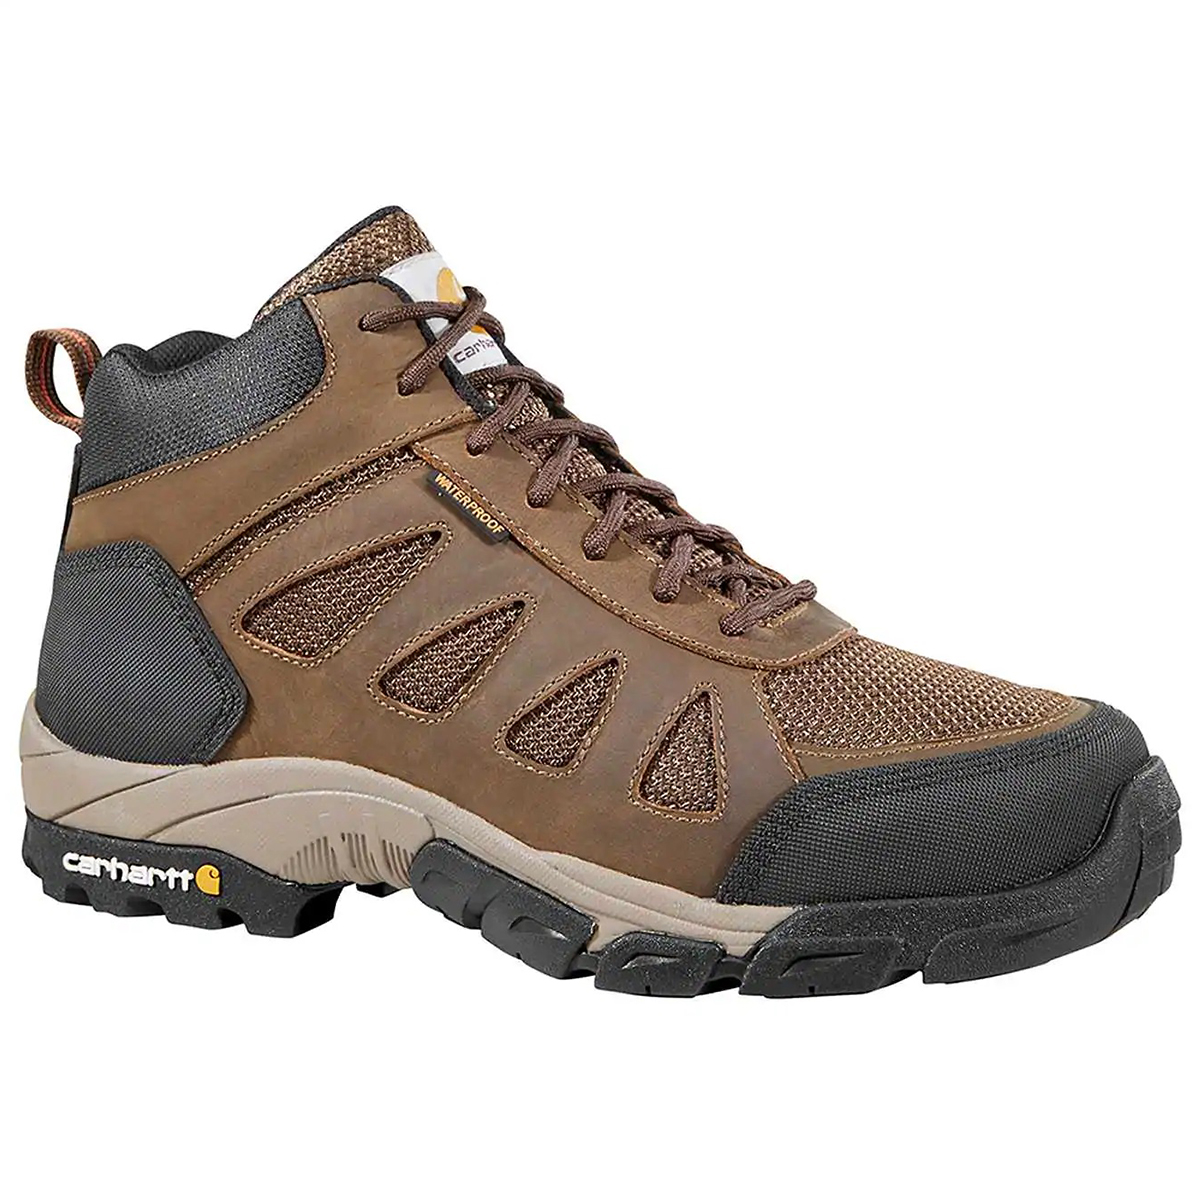 Carhartt Men's Lightweight Waterproof Hiking Work Boot - Brown, 9